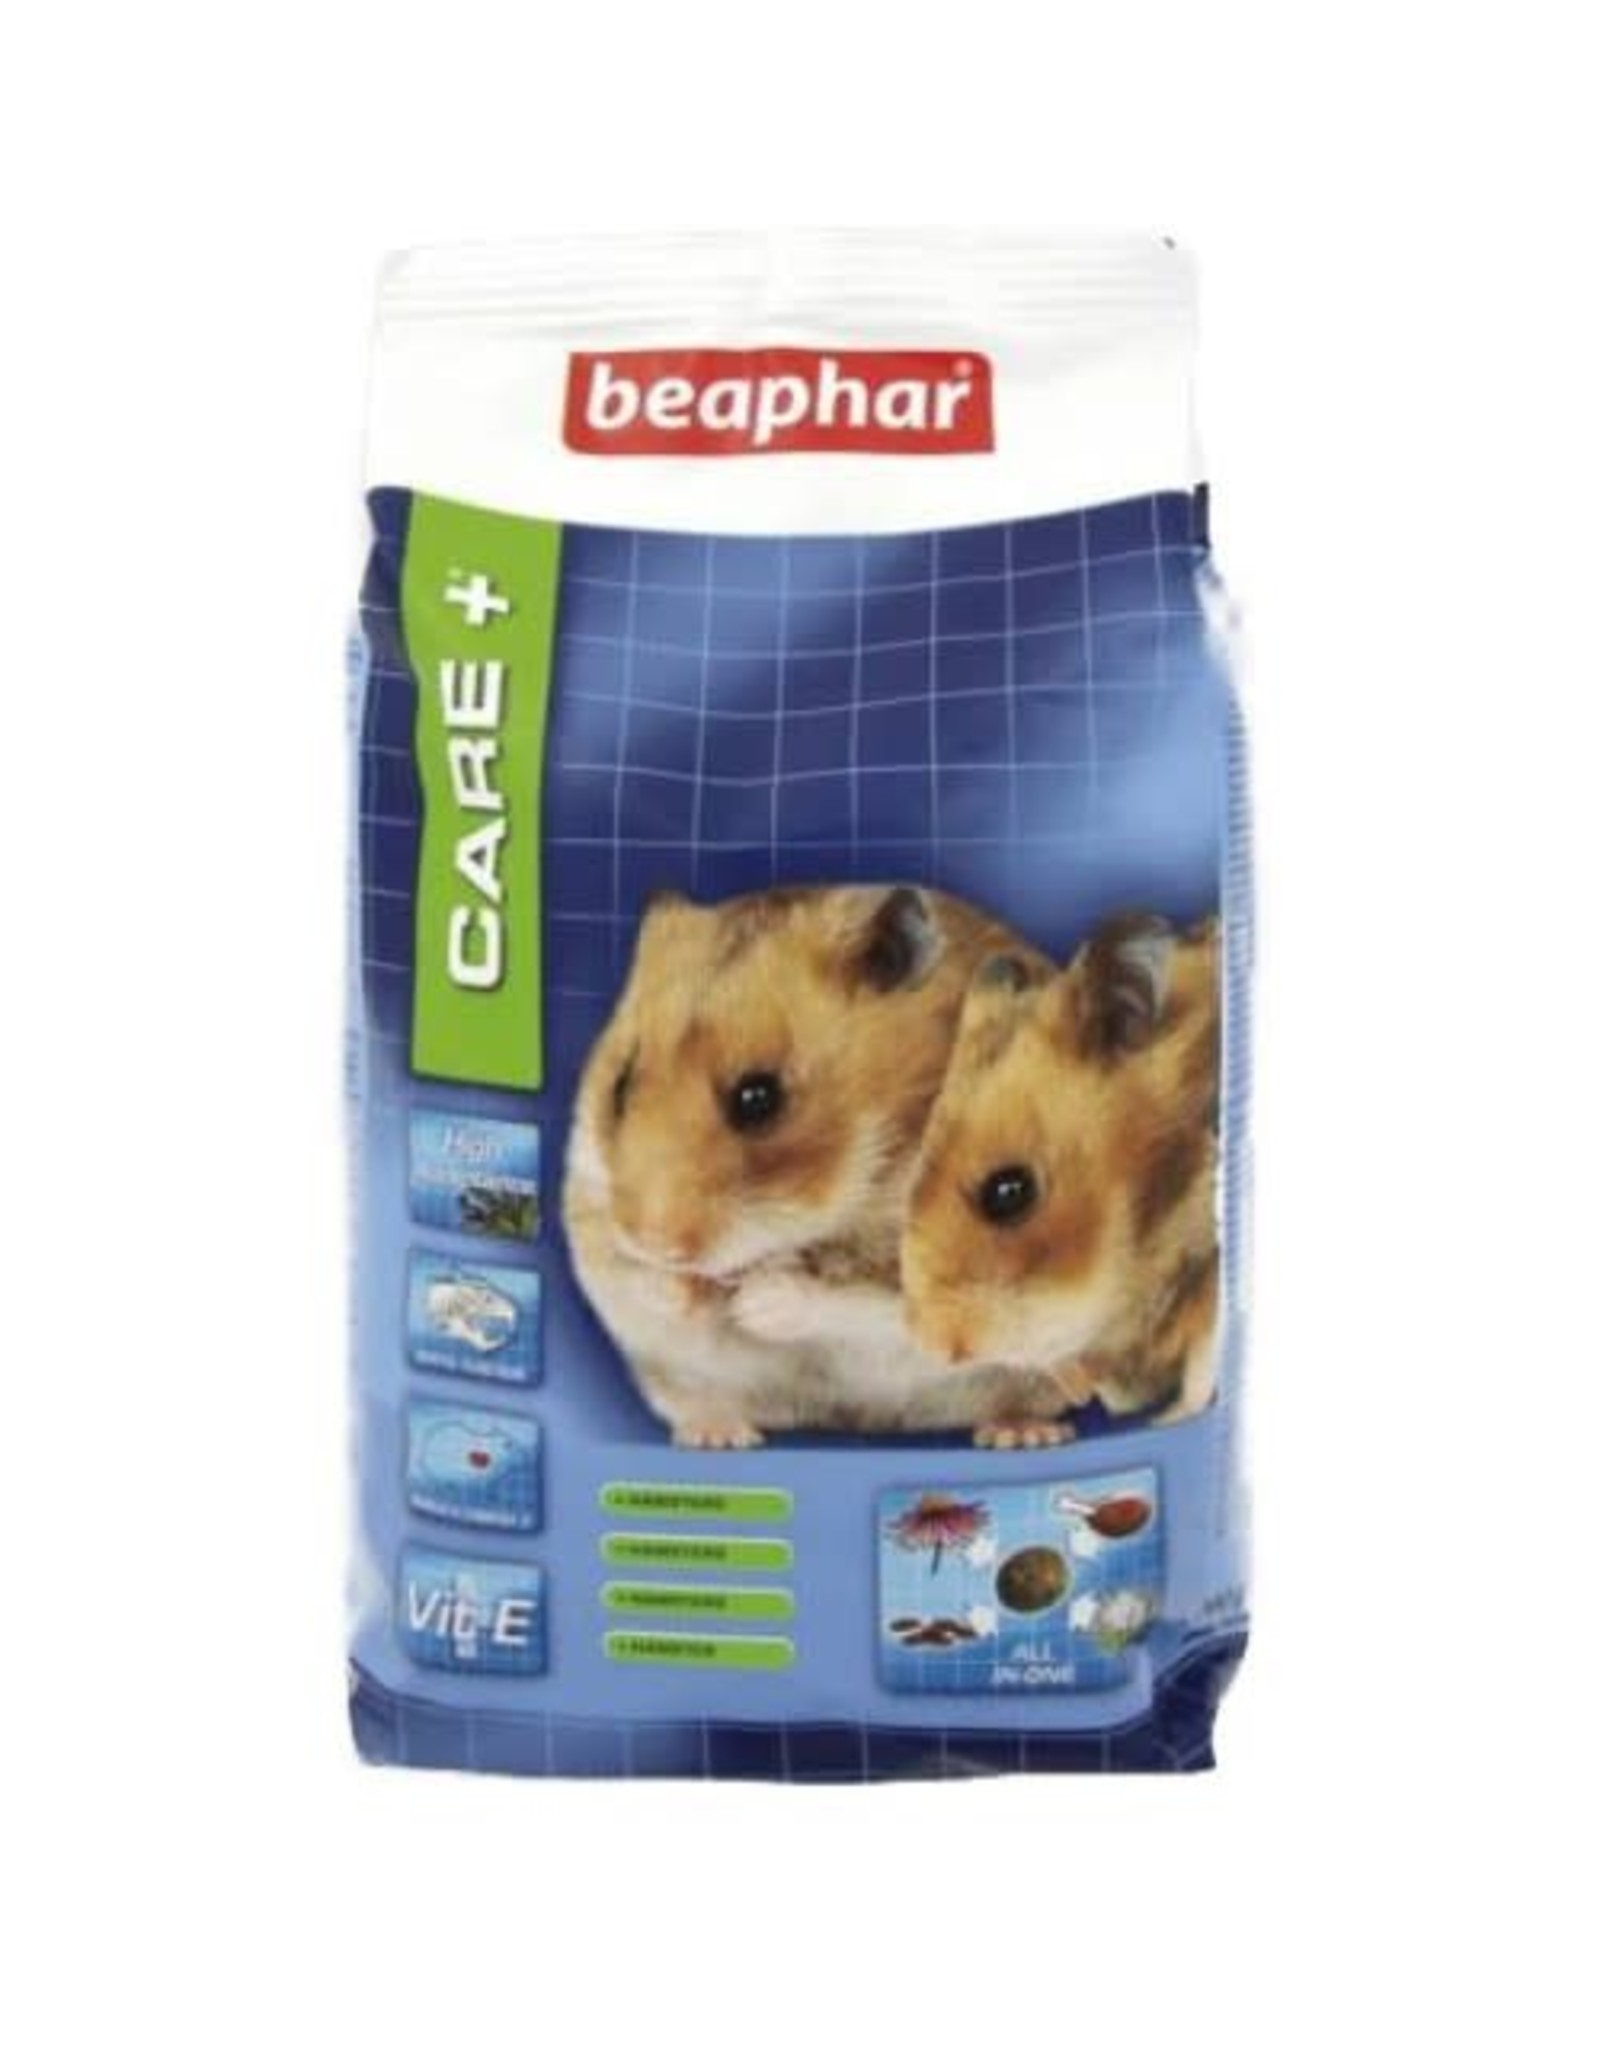 Beaphar Care + Hamster Food